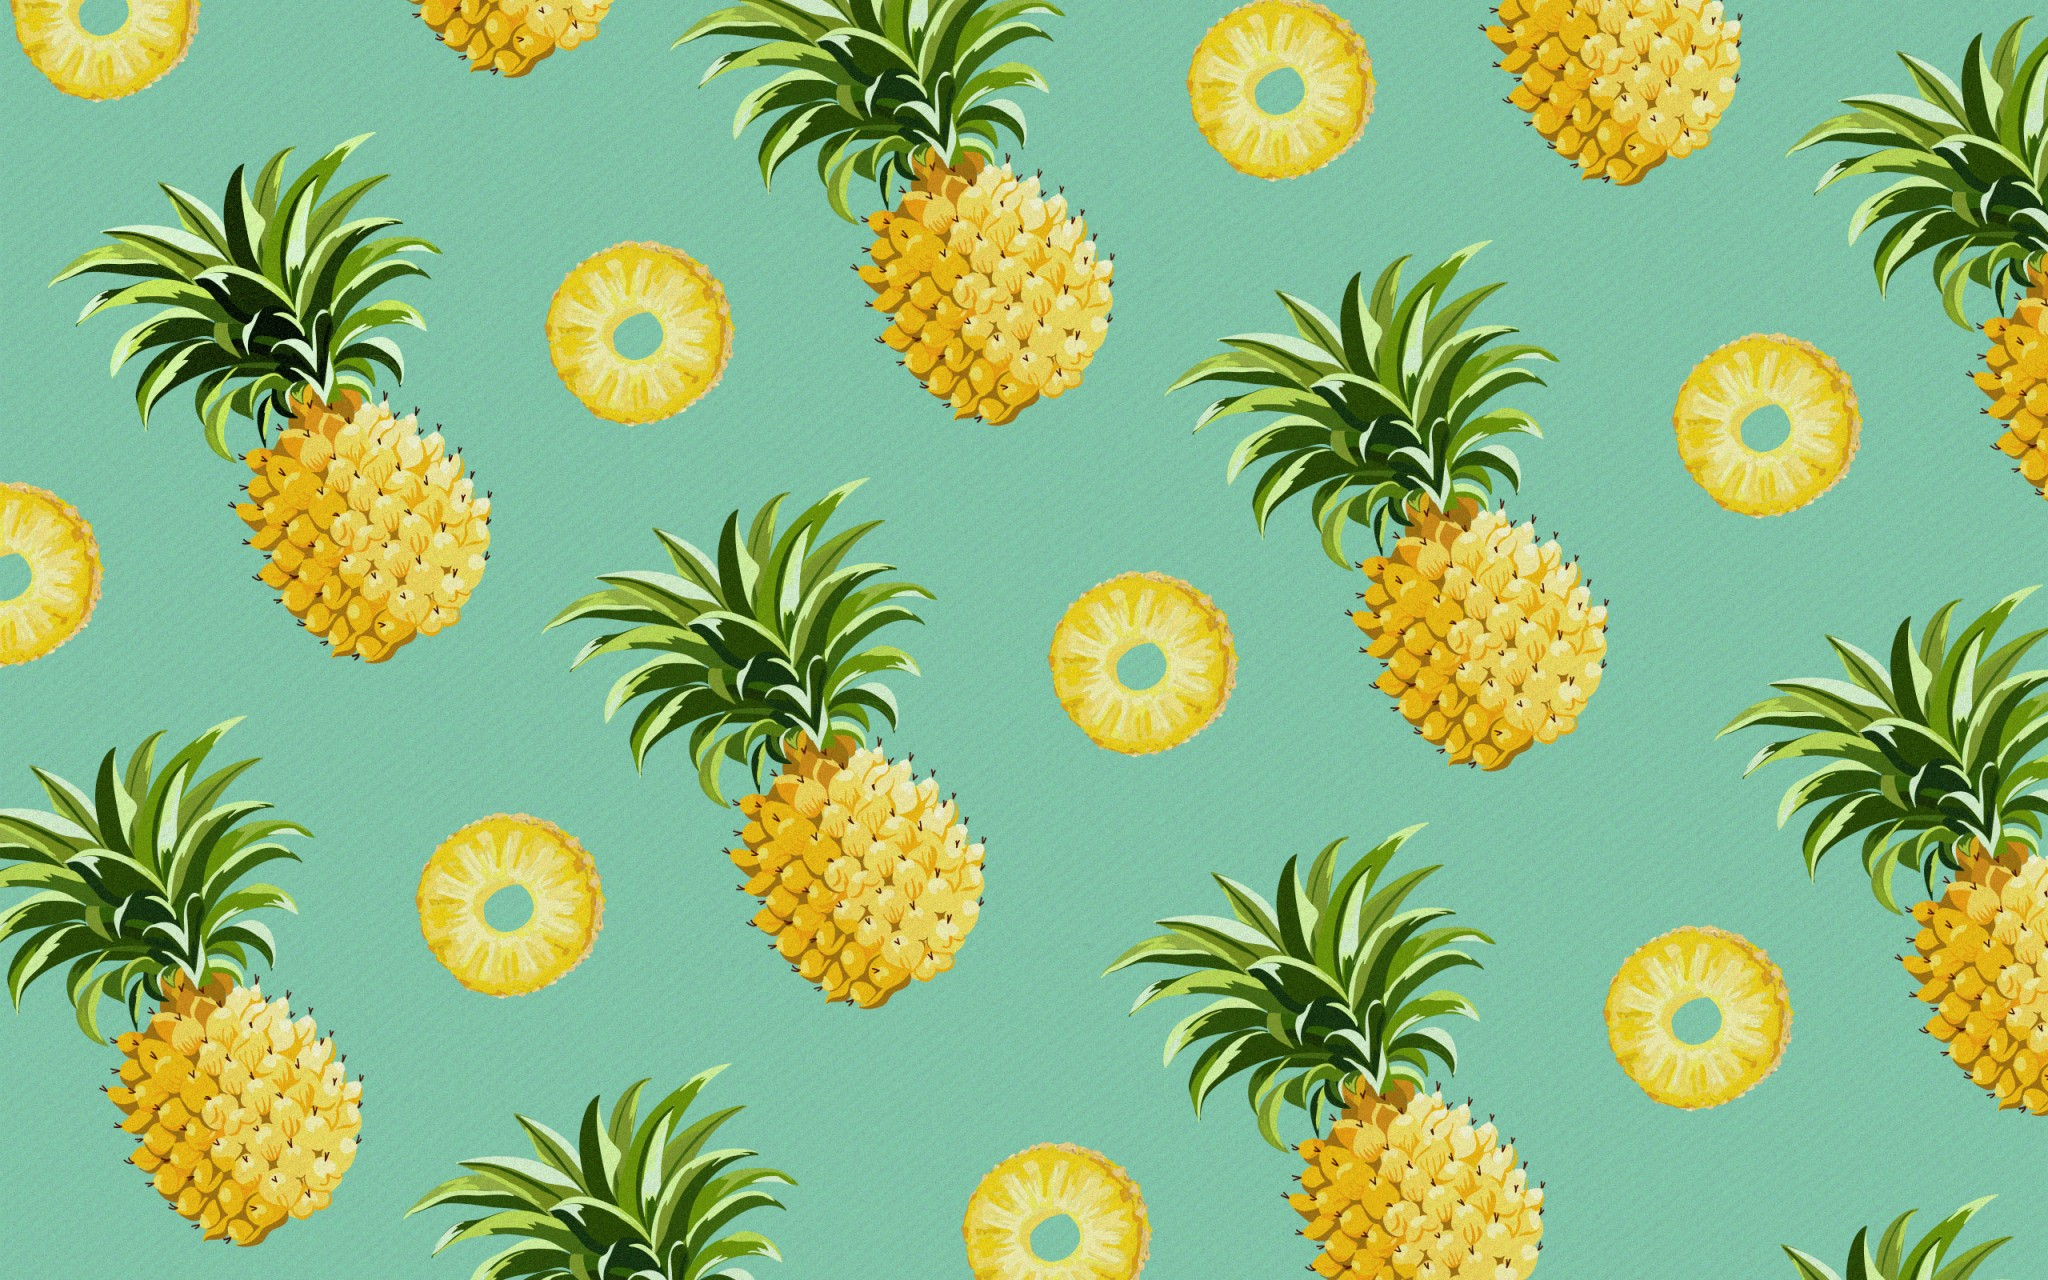 pineapple-wallpaper-22